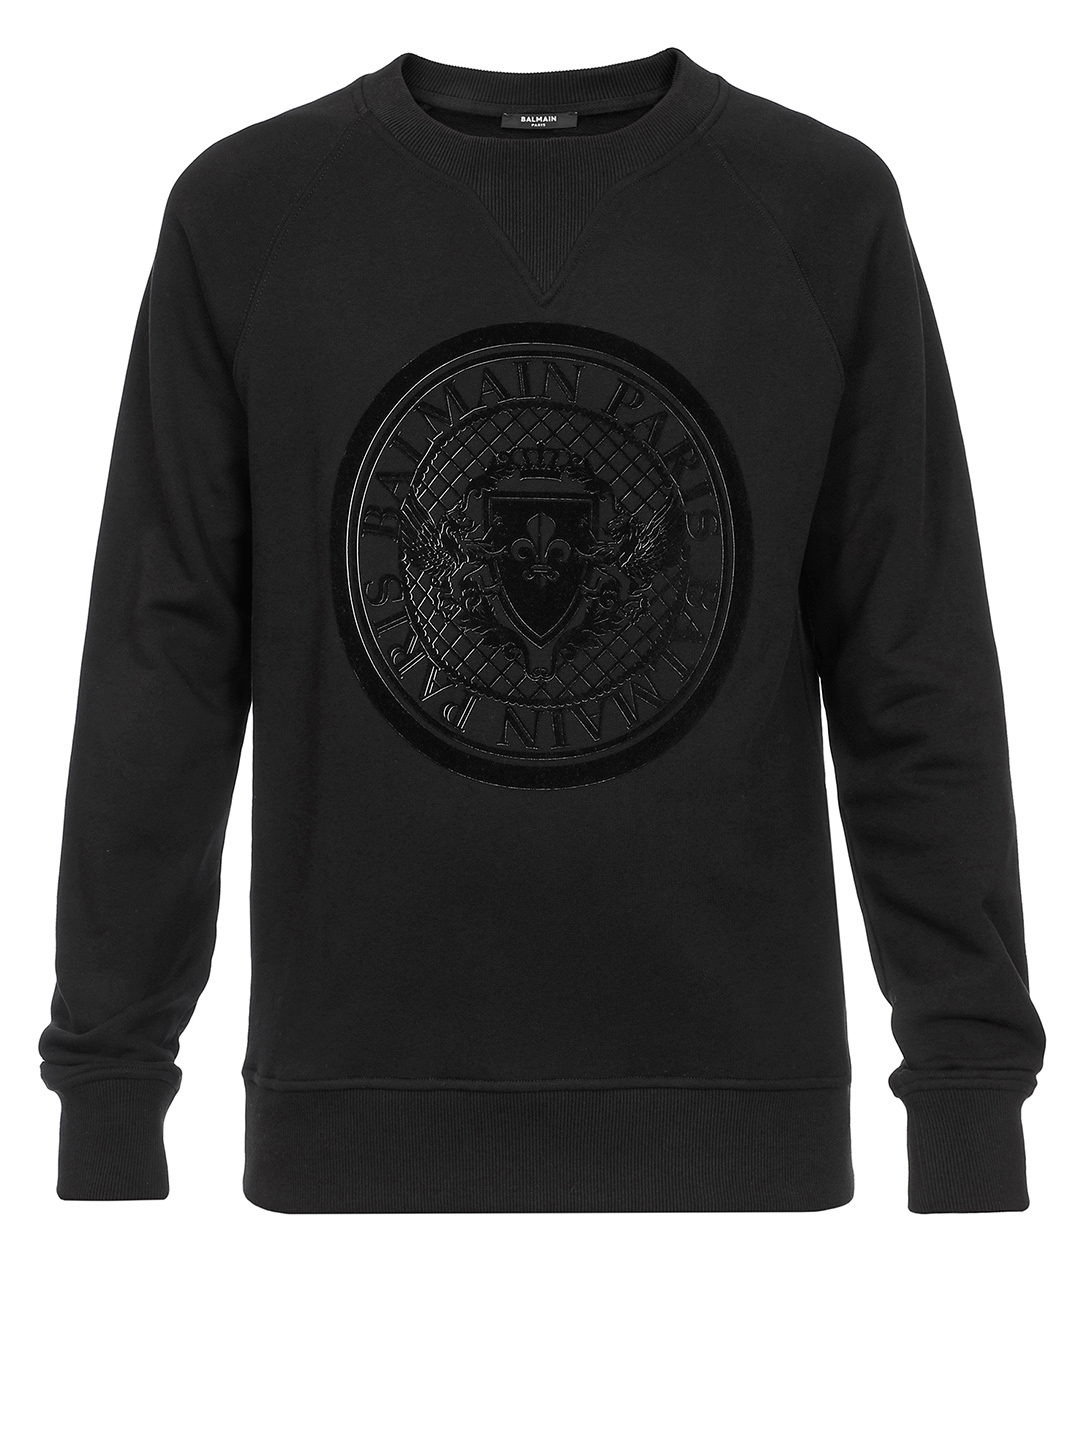 BALMAIN Cotton Sweatshirt With Flocked 3D Coin Men's Black